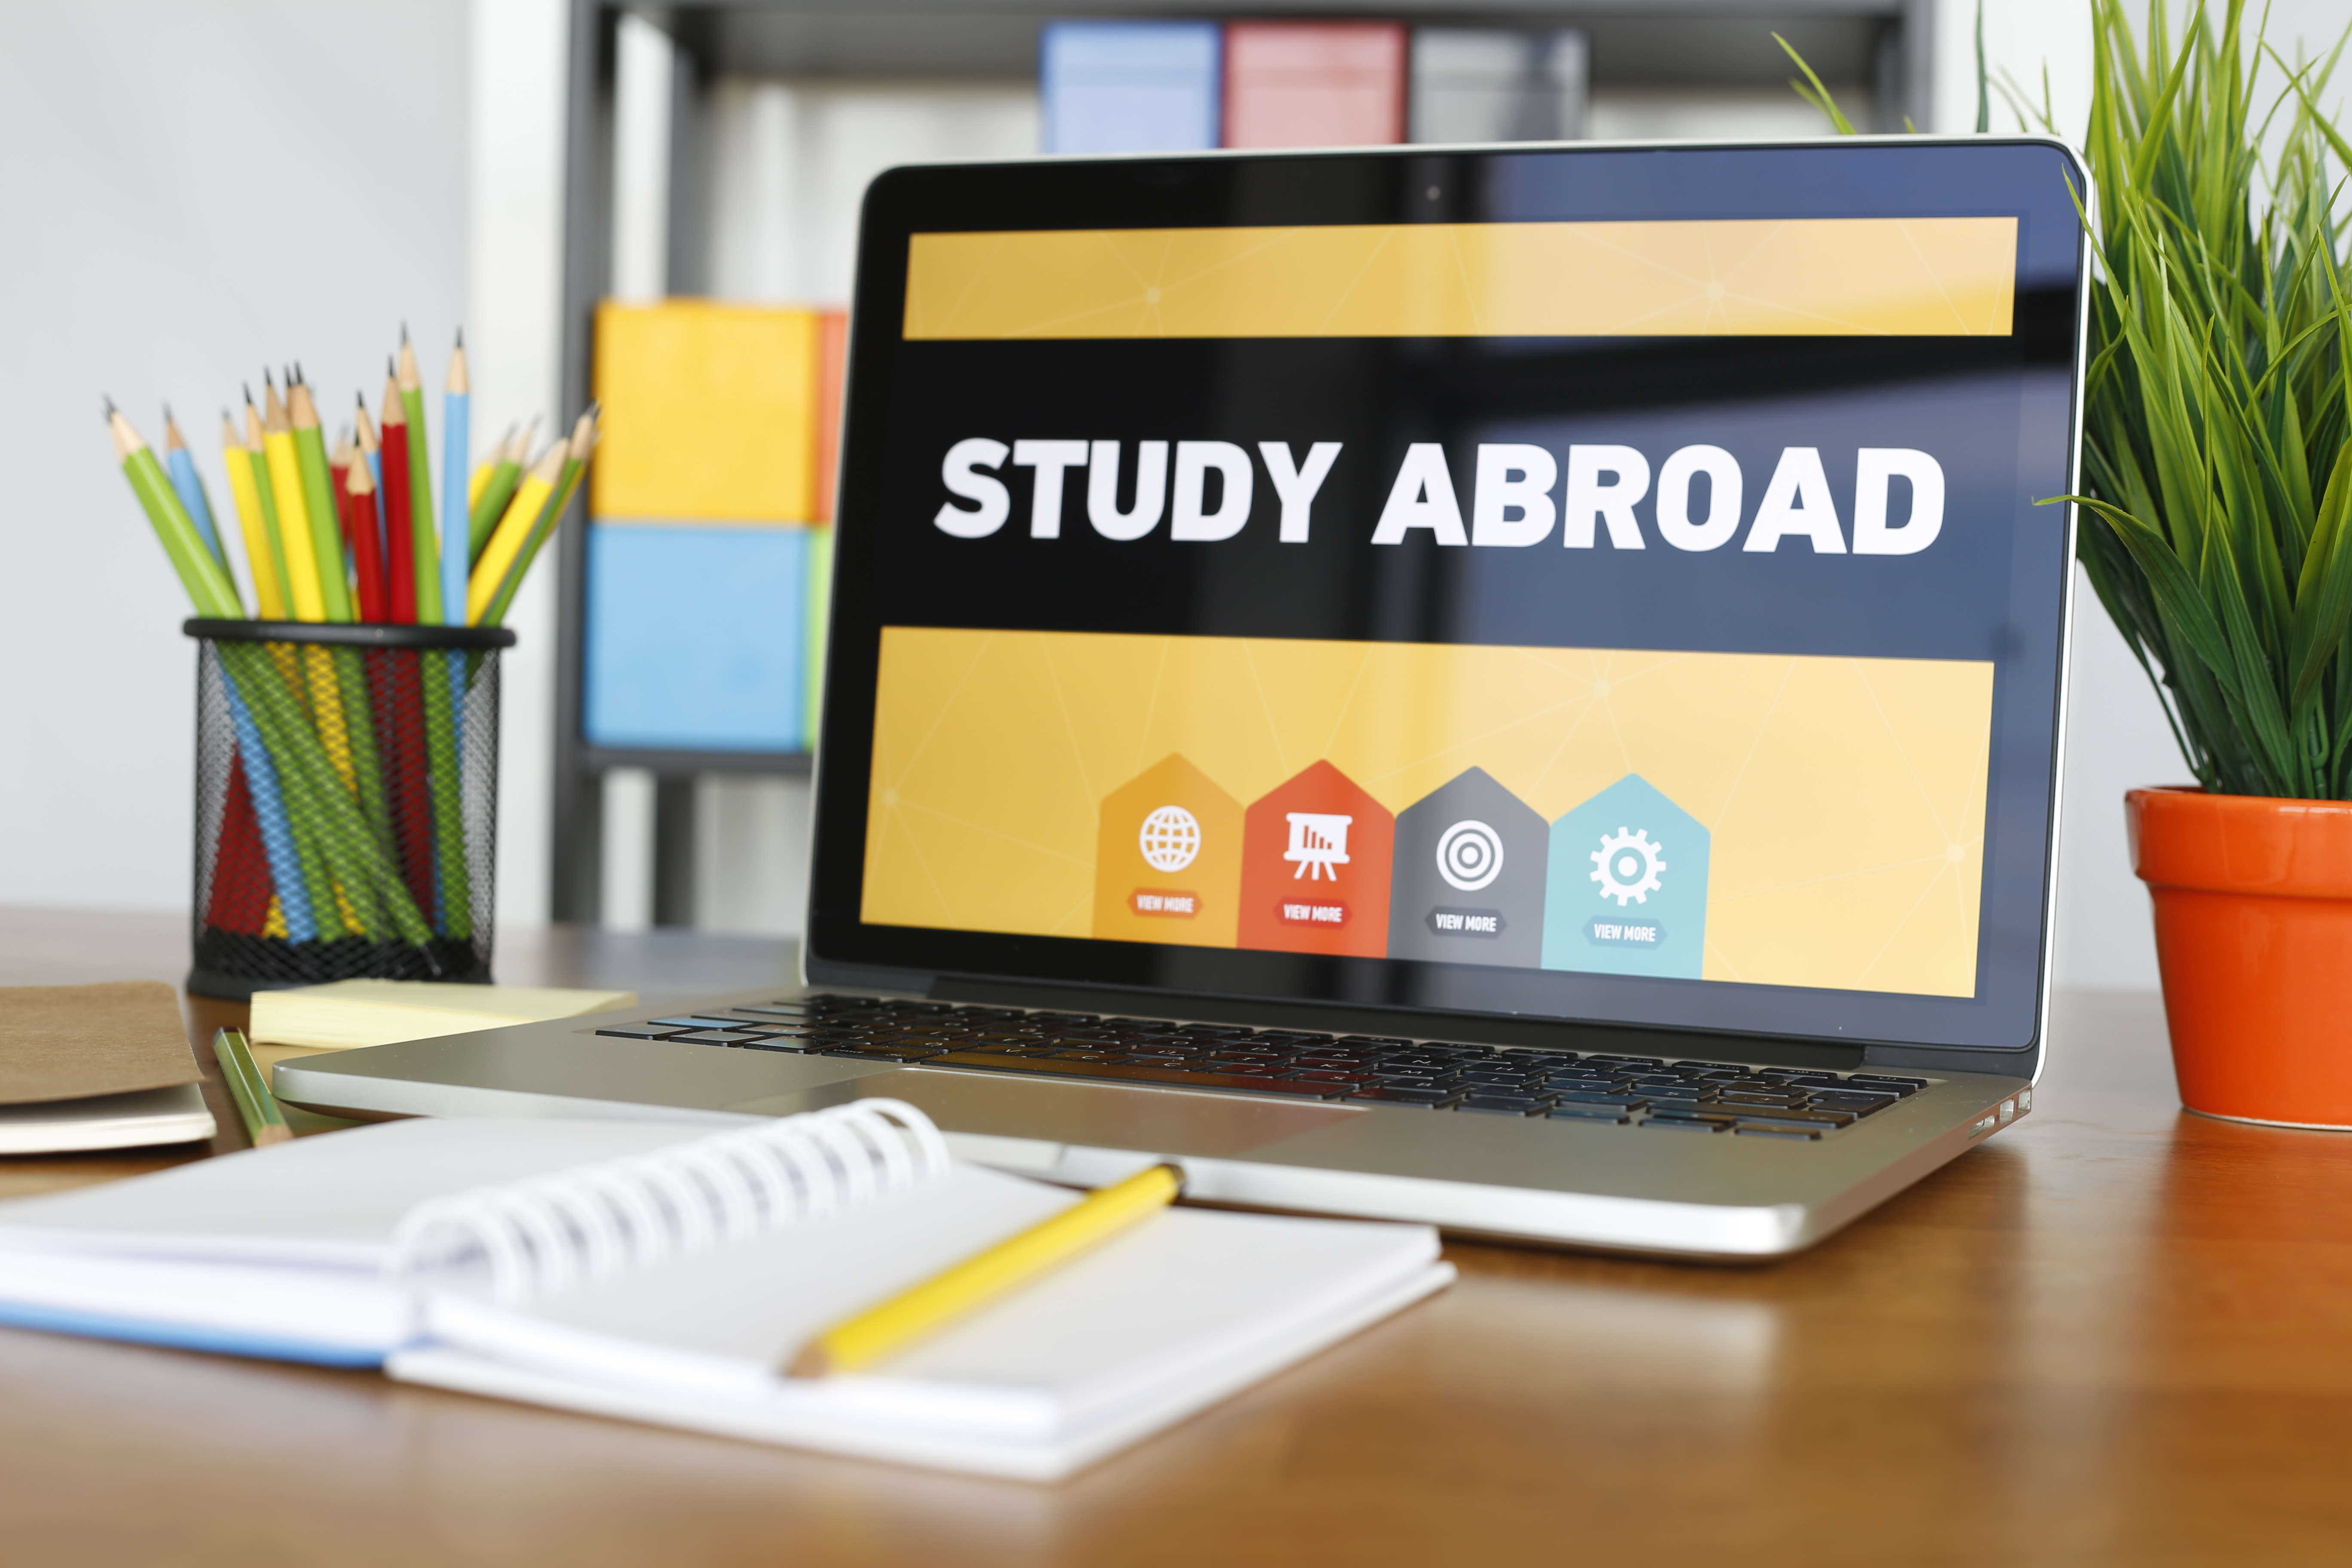 study abroad or local university essay Studying abroad the phrase study abroad means a persons intent to gain knowledge outside of the confines of their country studying abroad is an effective way to fulfill requirements for your college degree and travel the world while experiencing new cultures at the same time there are many various aspects of studying abroad.